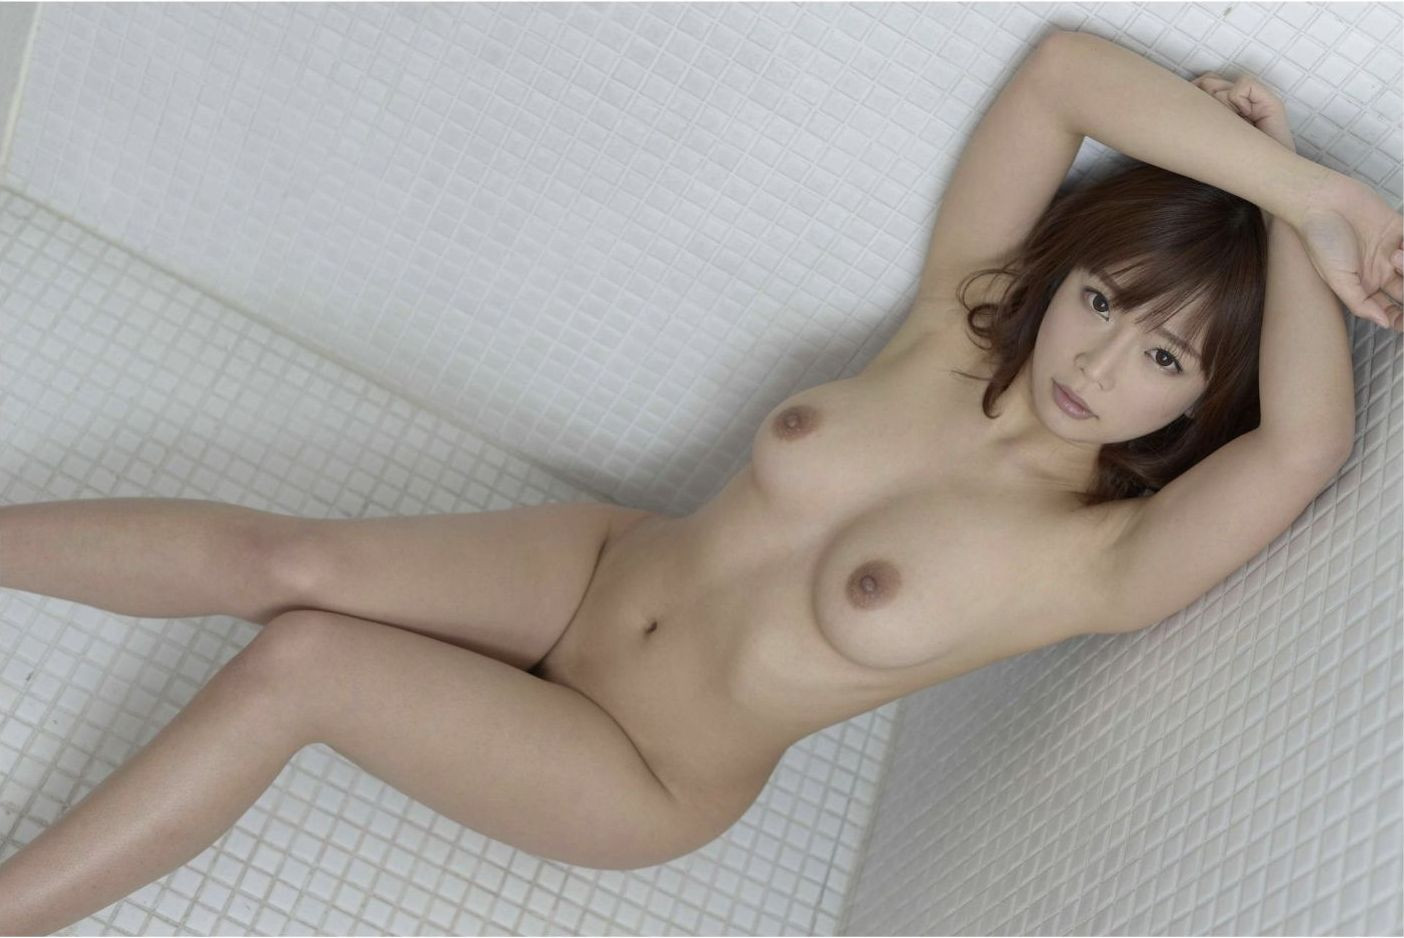 SOFT ON DEMAND GRAVURE COLLECTION 紗倉まな02 photo 144